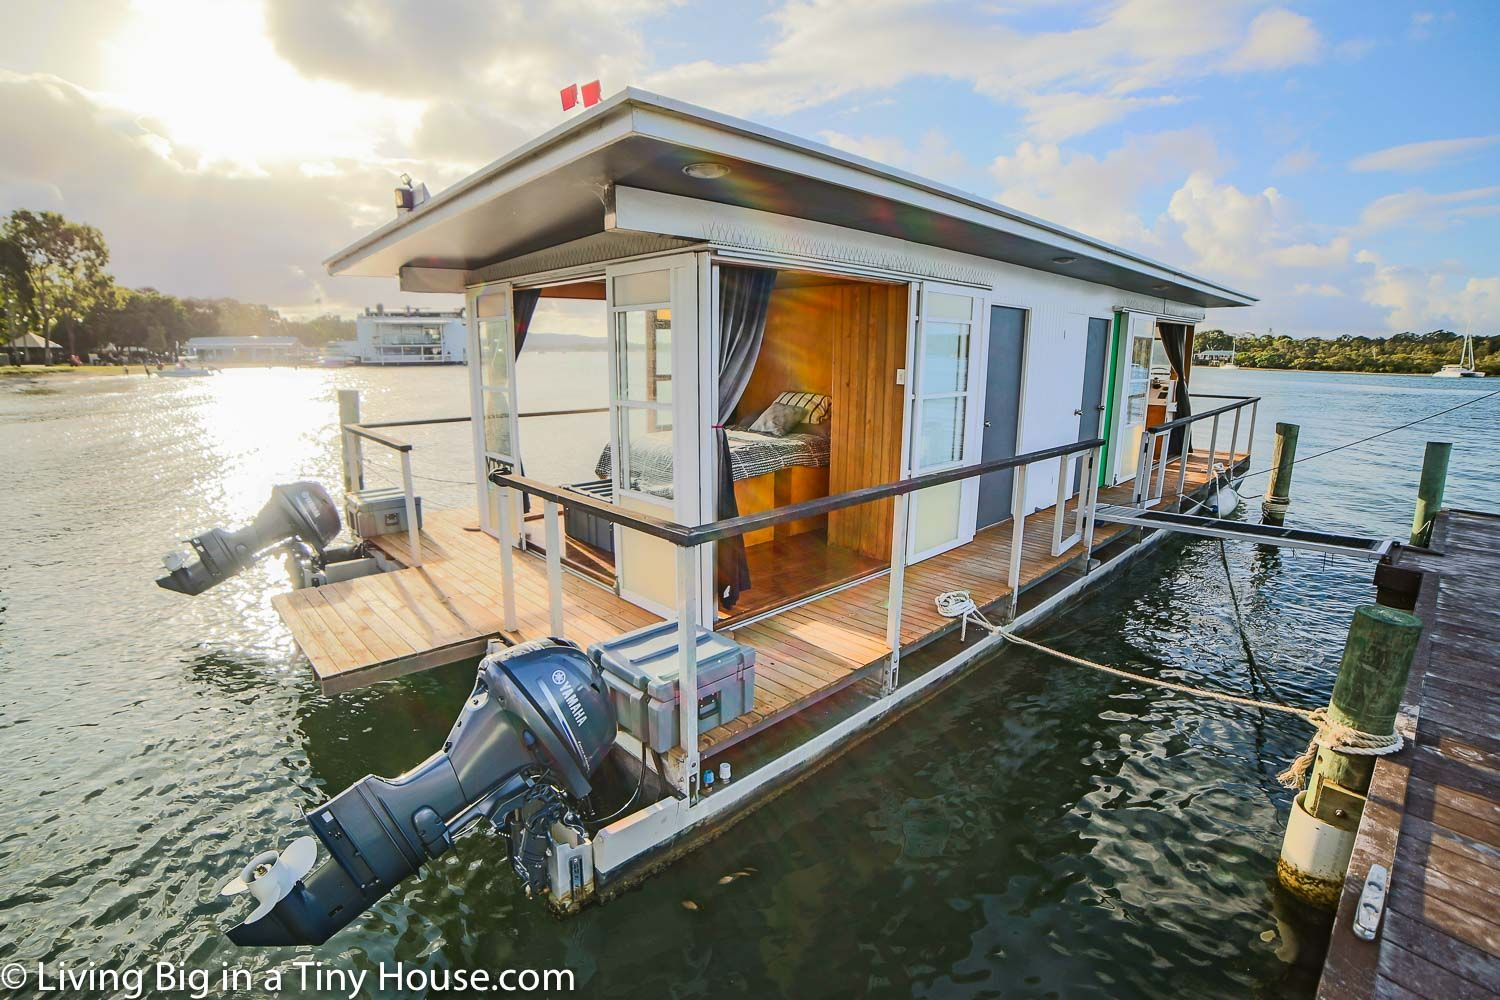 Life On The Water In A Tiny House Boat Living Big In A